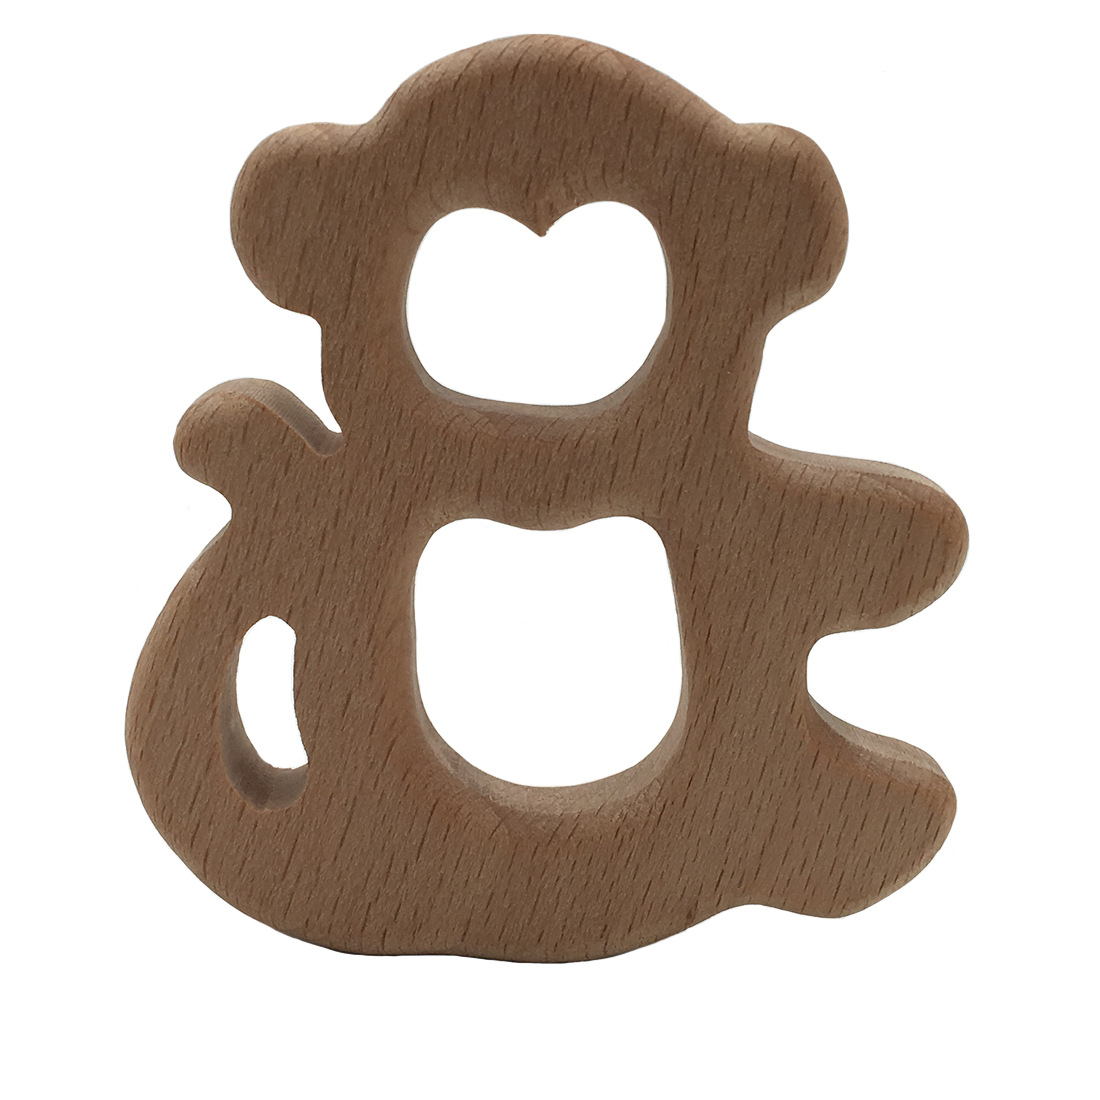 Monkey Wood Teething Toy For Baby Rattle Teething Ring Natural Wooden Teether Teething Baby Gender Neutral Shower Easter Gift